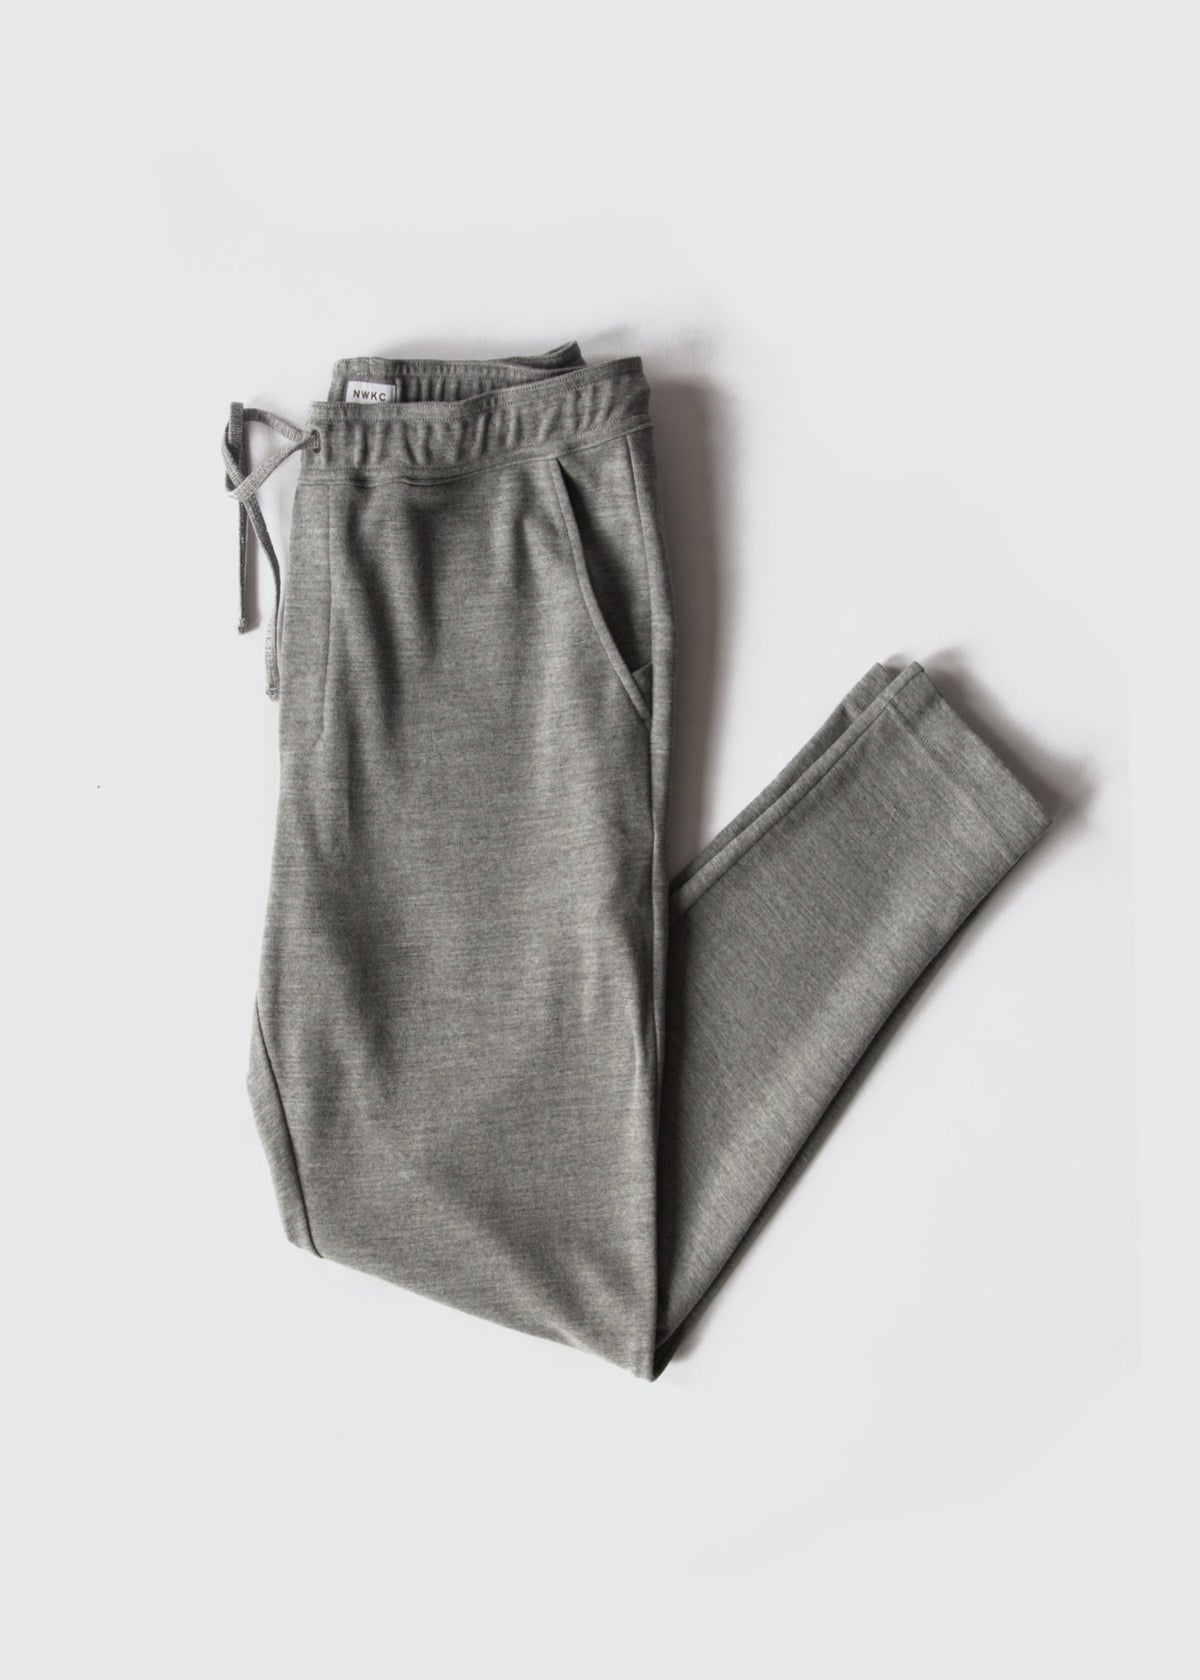 004 - TROUSER - FEATHER GRAY - Wilson & Willy's - MPLS Neighbor Goods